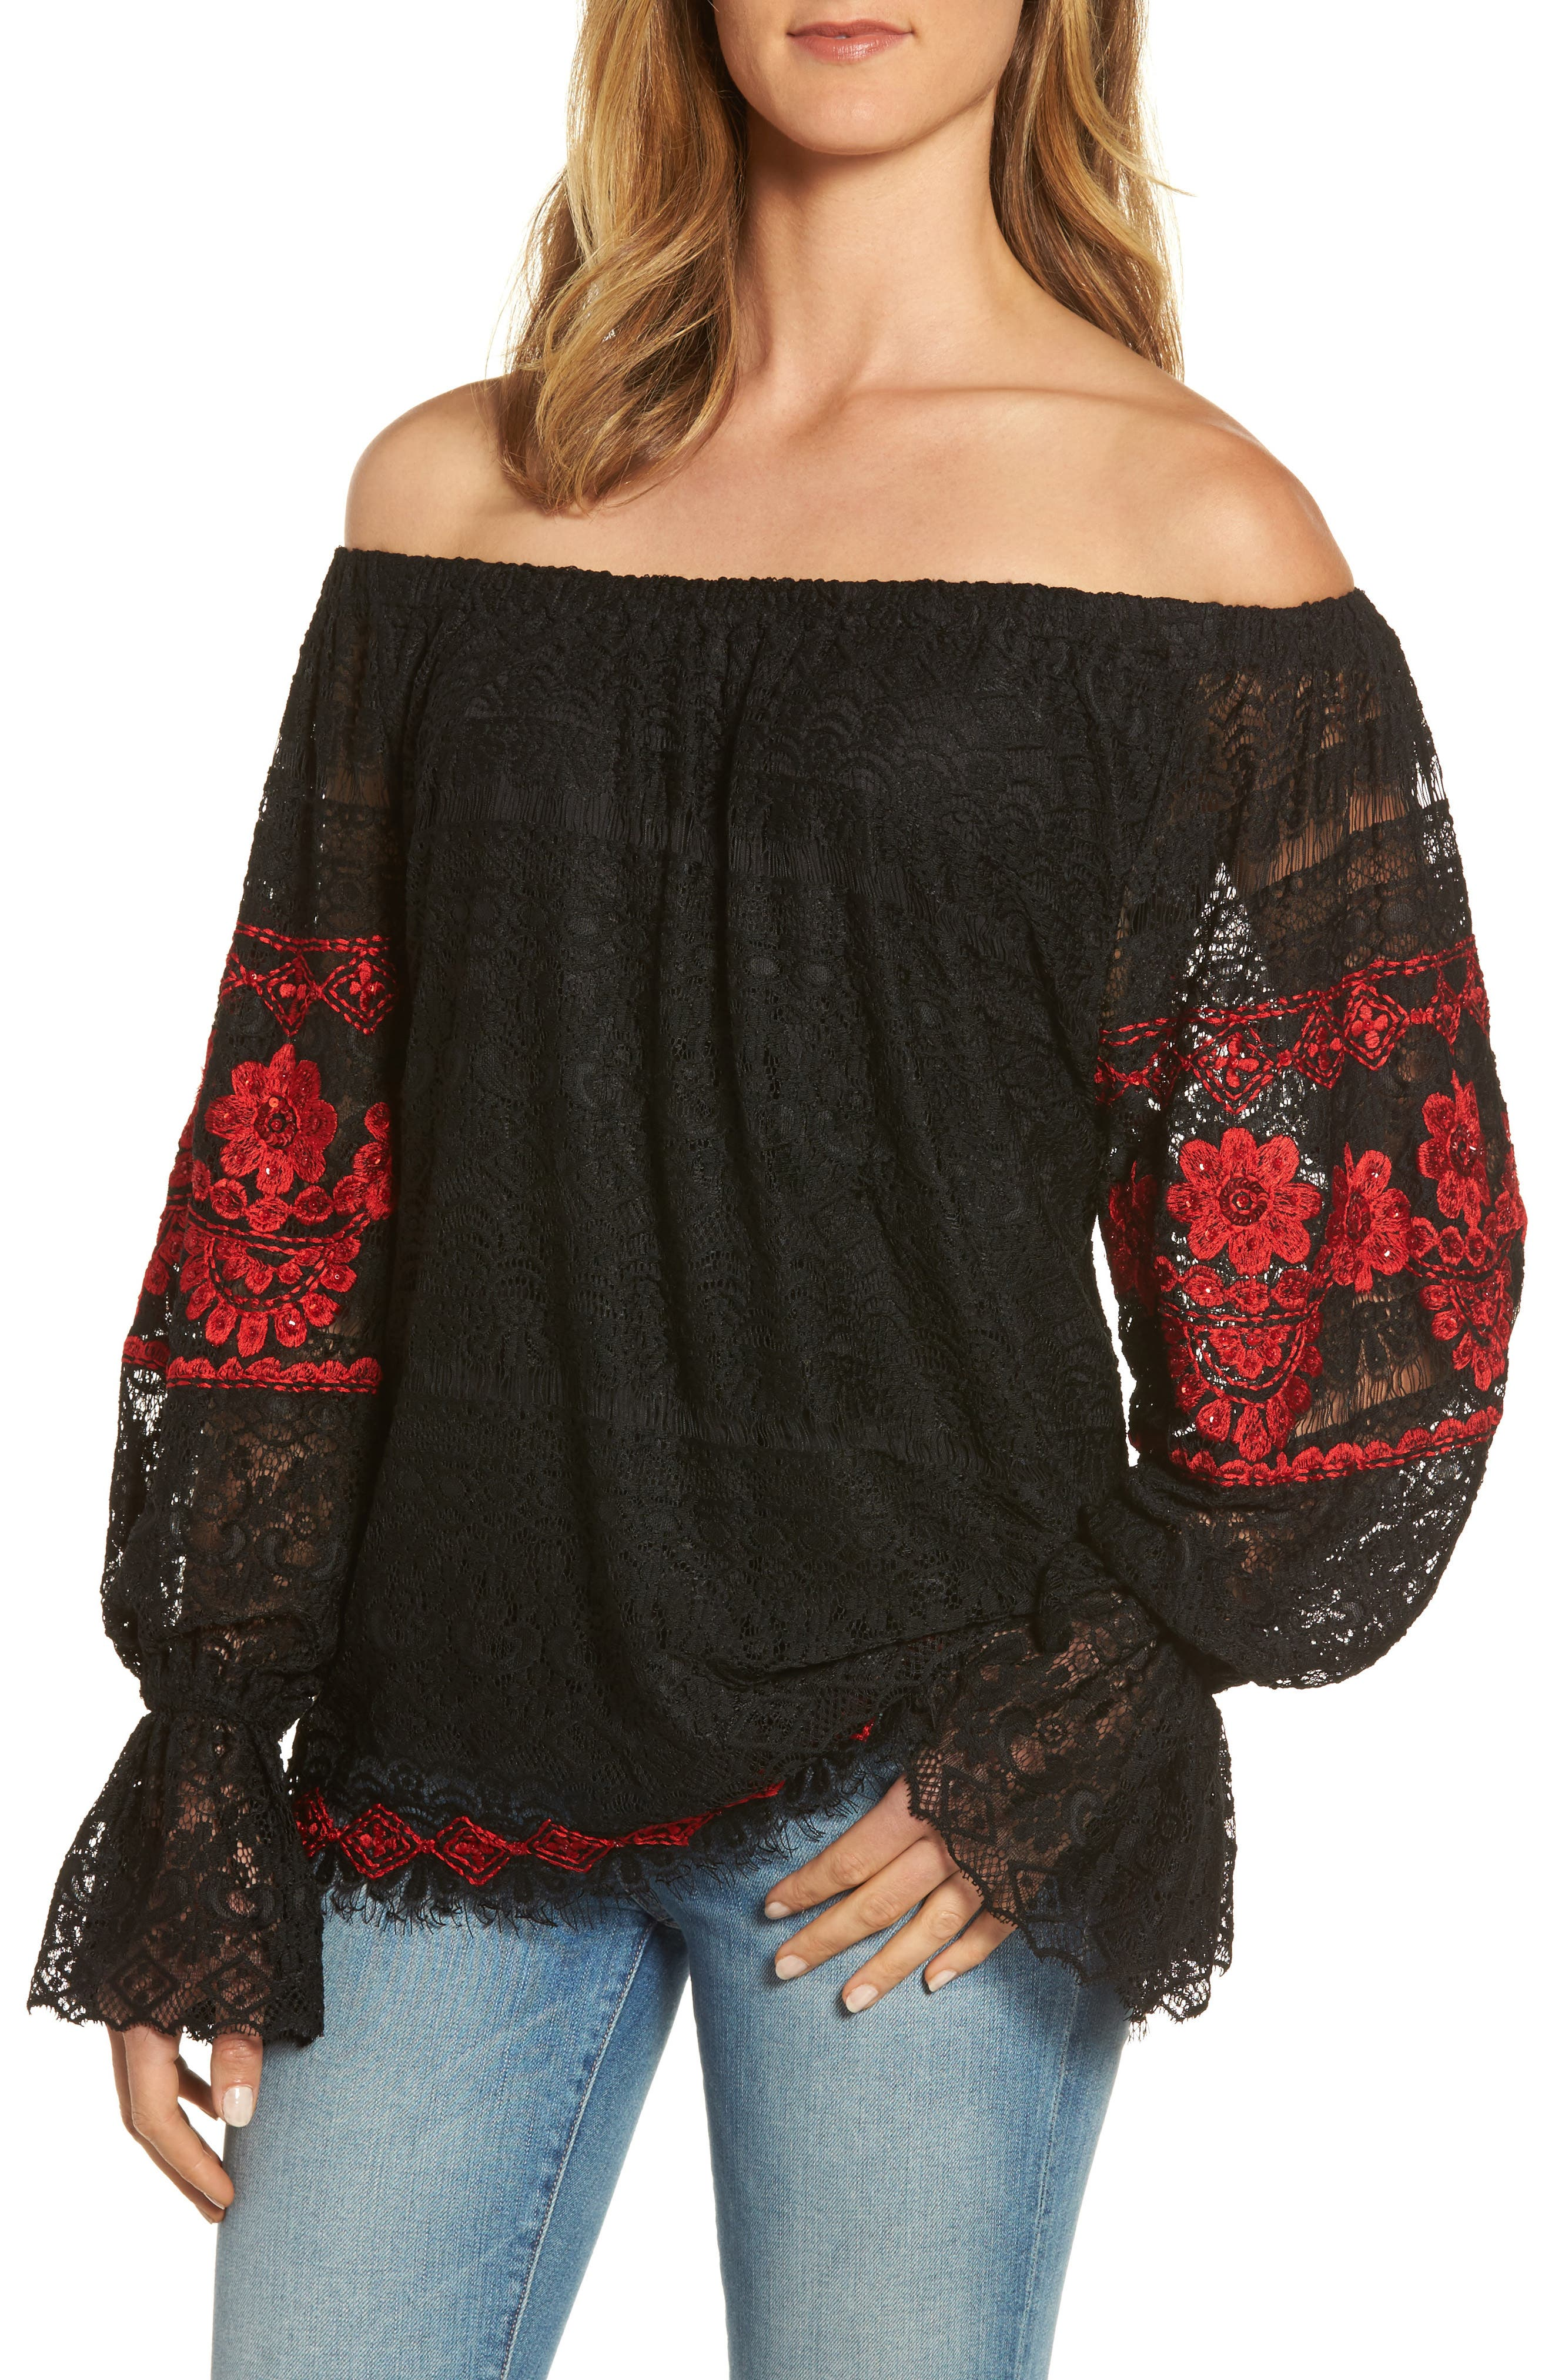 Main Image - KAS NEW YORK Clare Off the Shoulder Lace Top